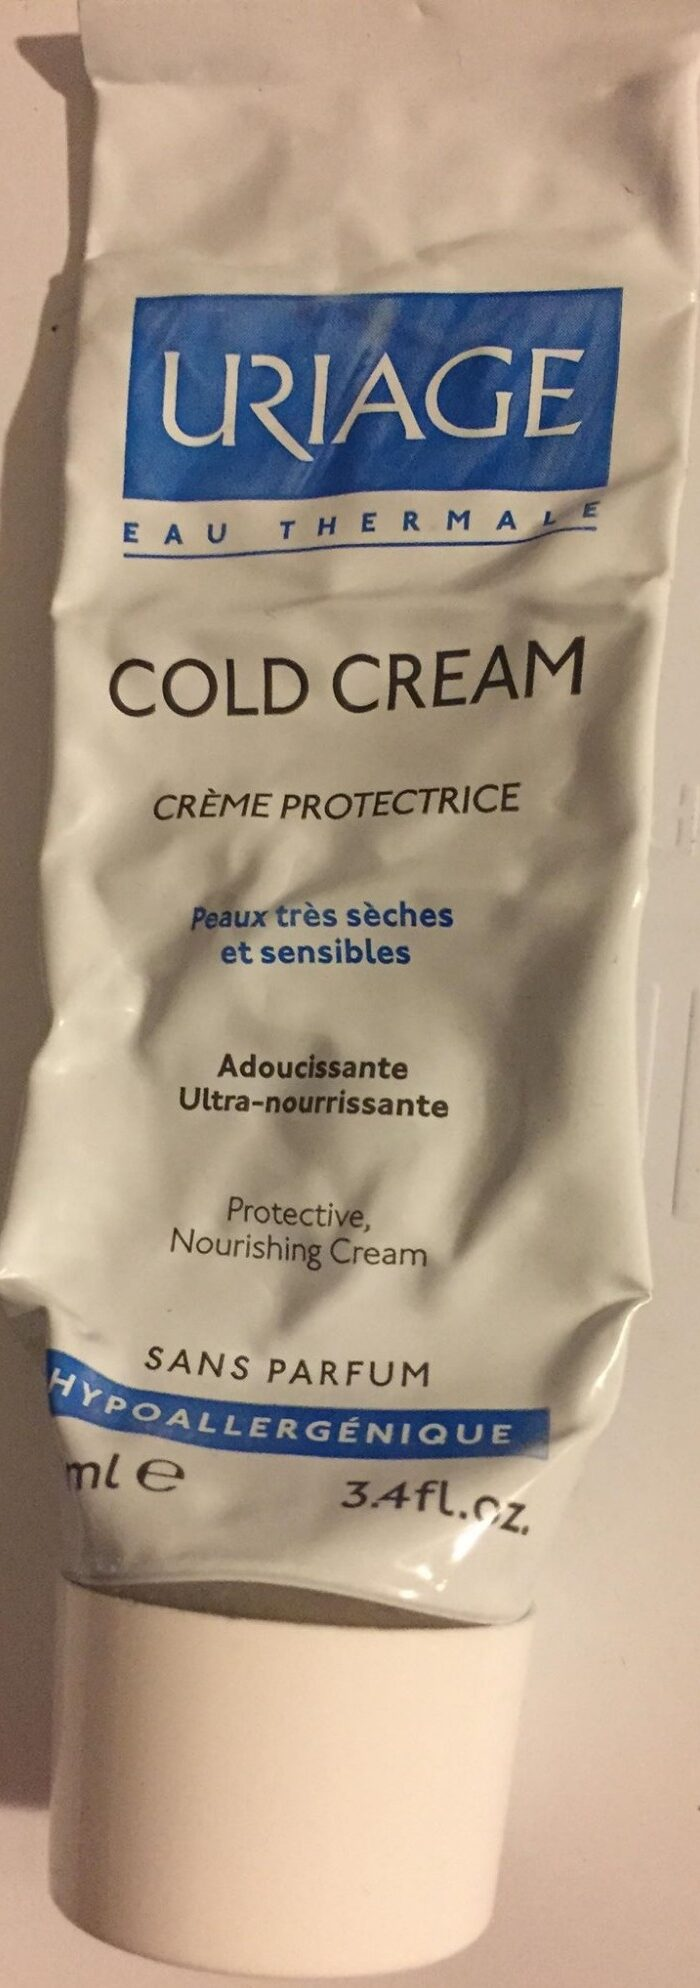 Cold Cream - crème protectrice - Product